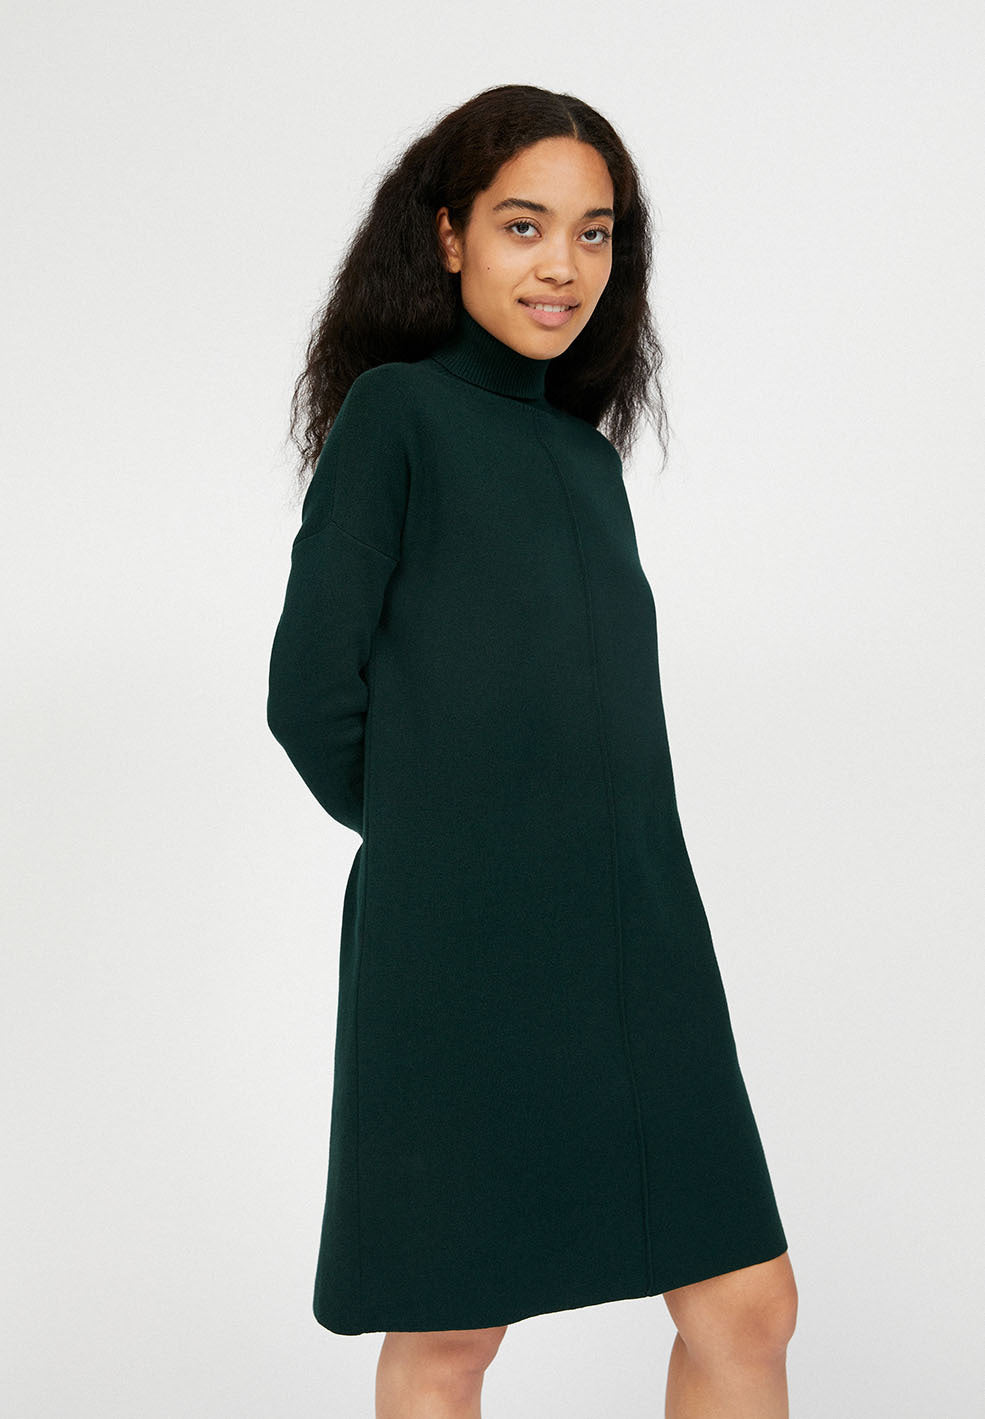 Siennaa Dark Green Knitted Dress Organic Cotton